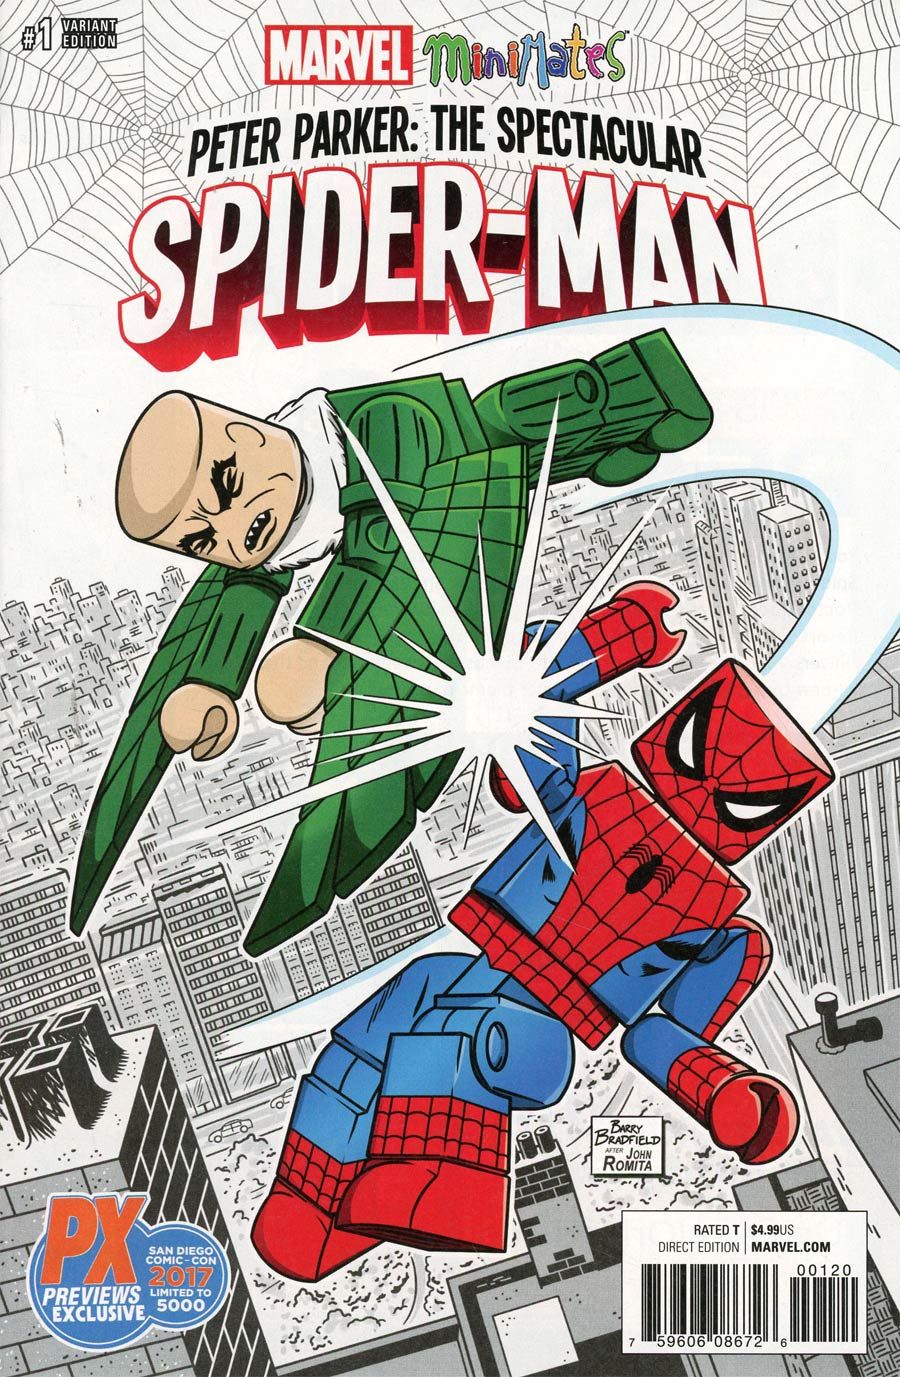 Peter Parker Spectacular Spider-Man #1 Cover O SDCC 2017 Exclusive Barry Bradfield Minimates Variant Cover